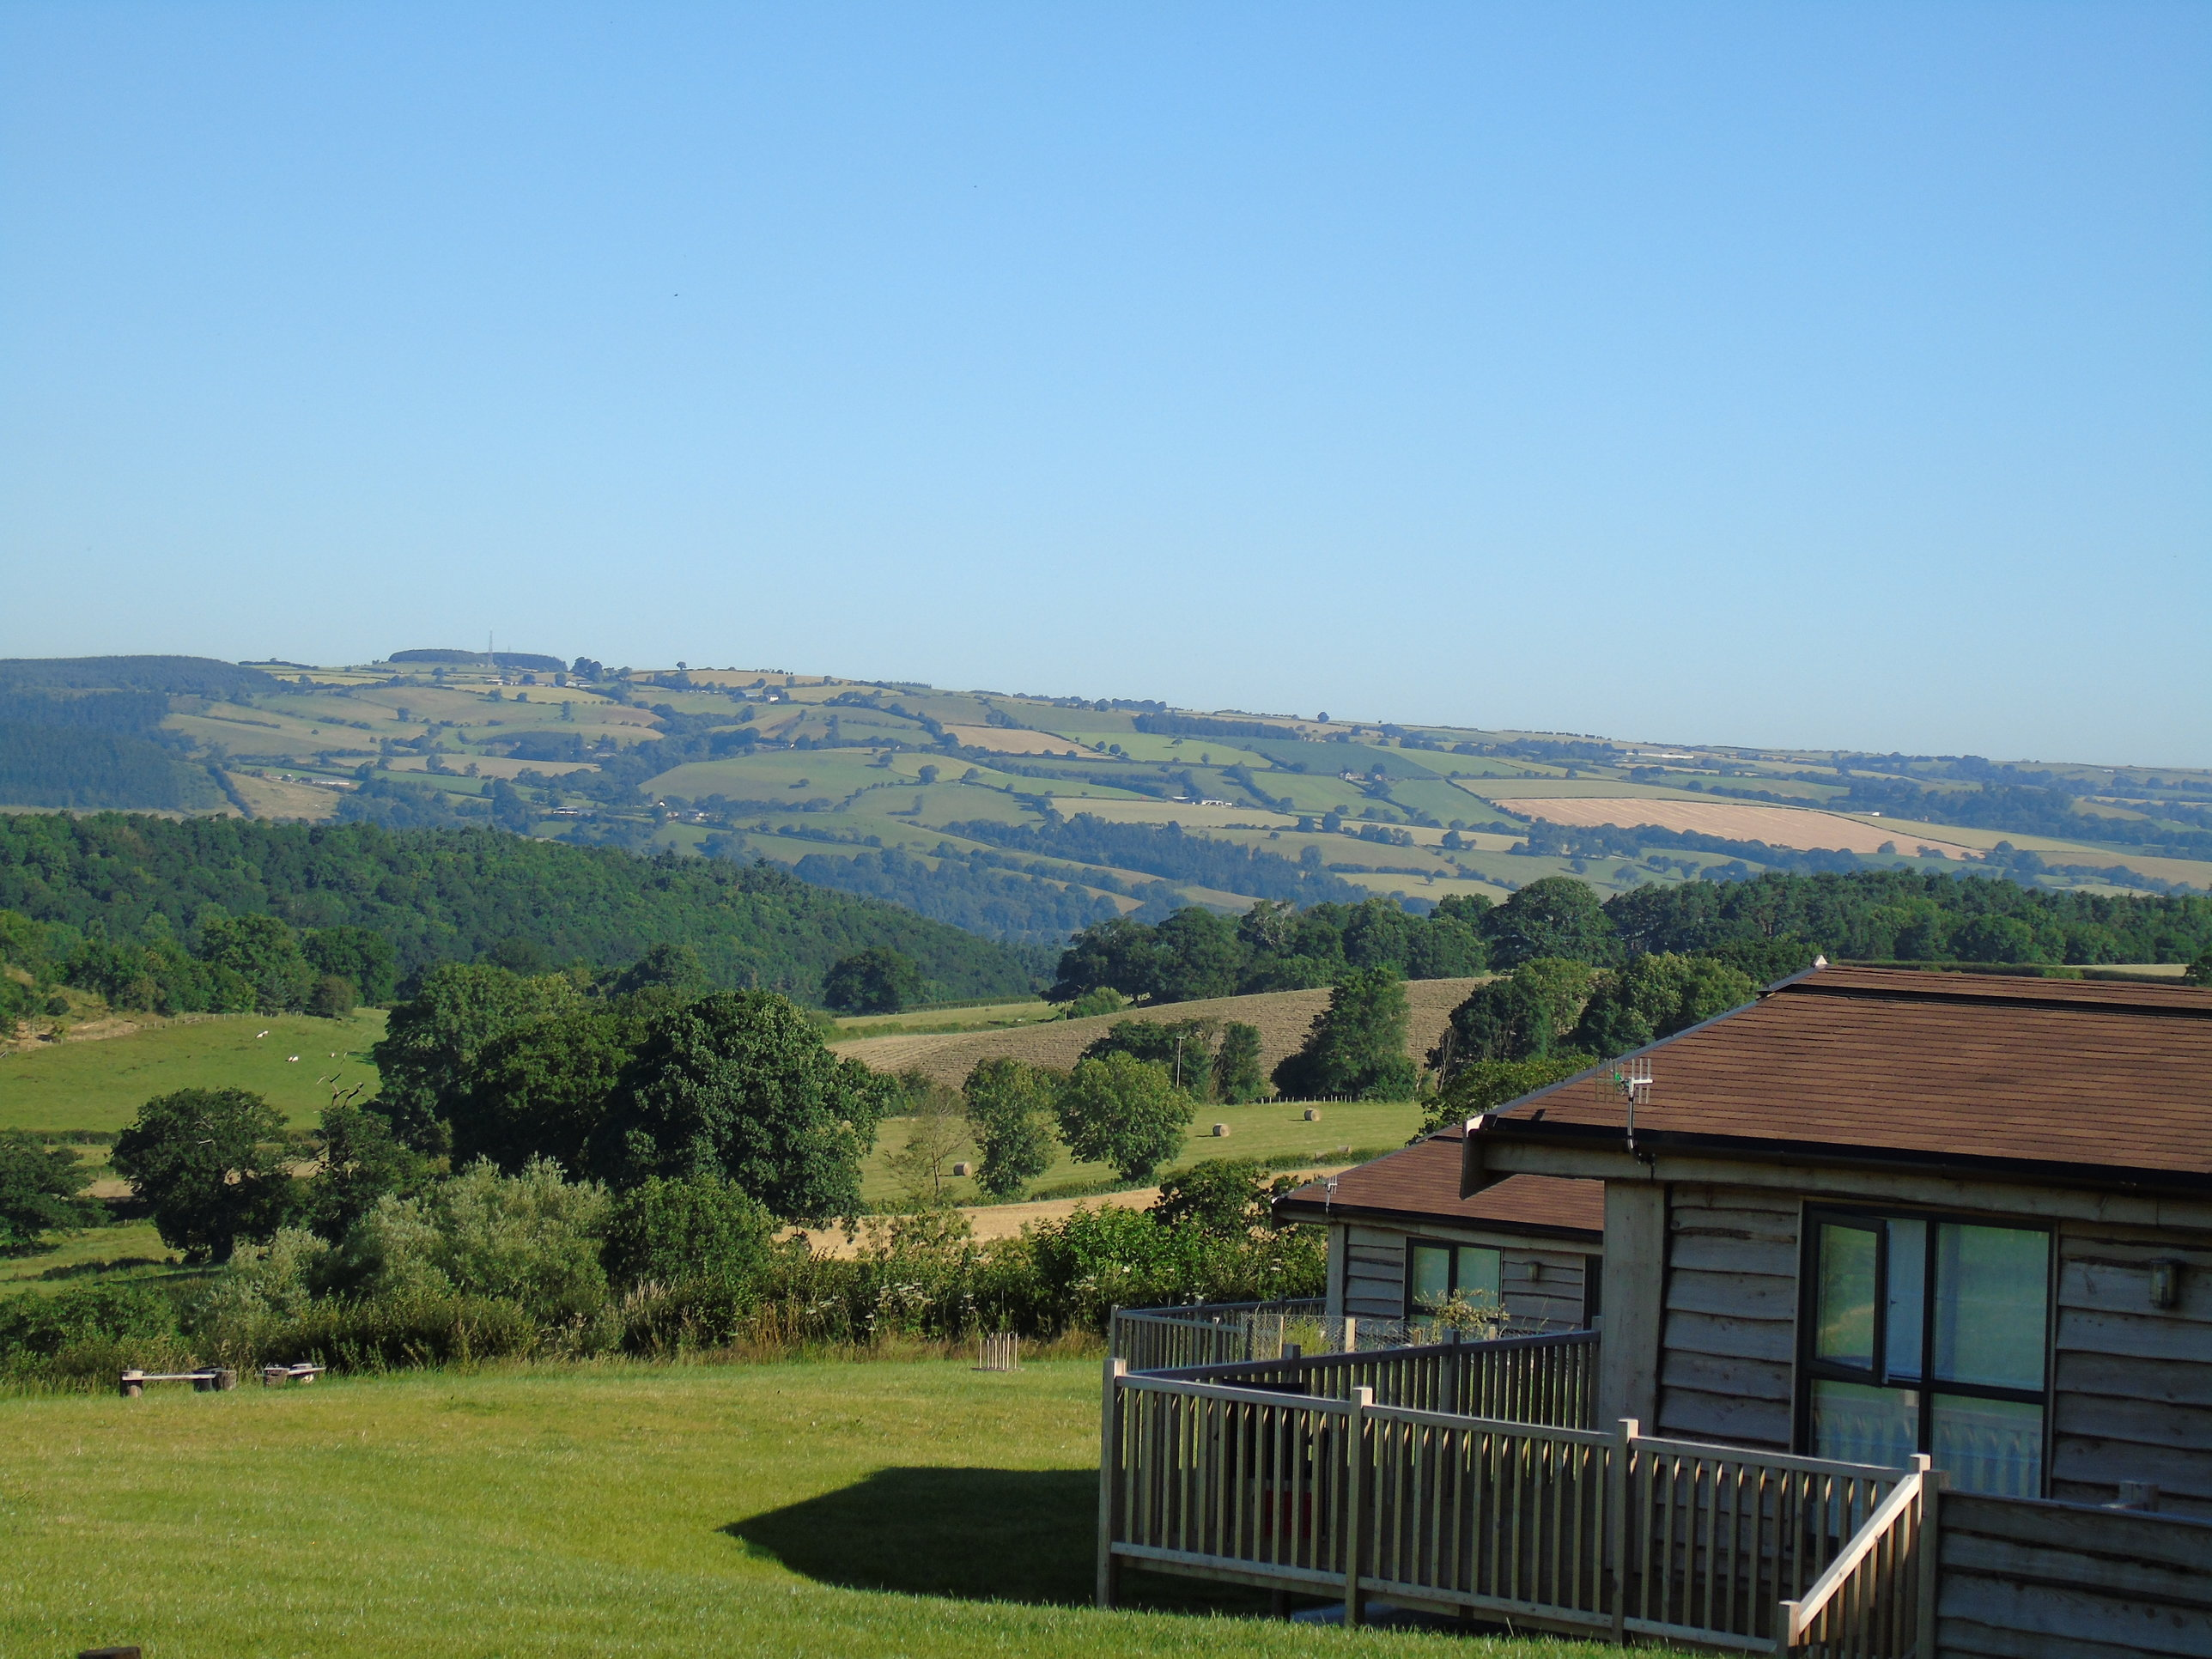 Whirlpool bath cottage sleeps 2 in Heart of England, West Midlands, Shropshire Hills